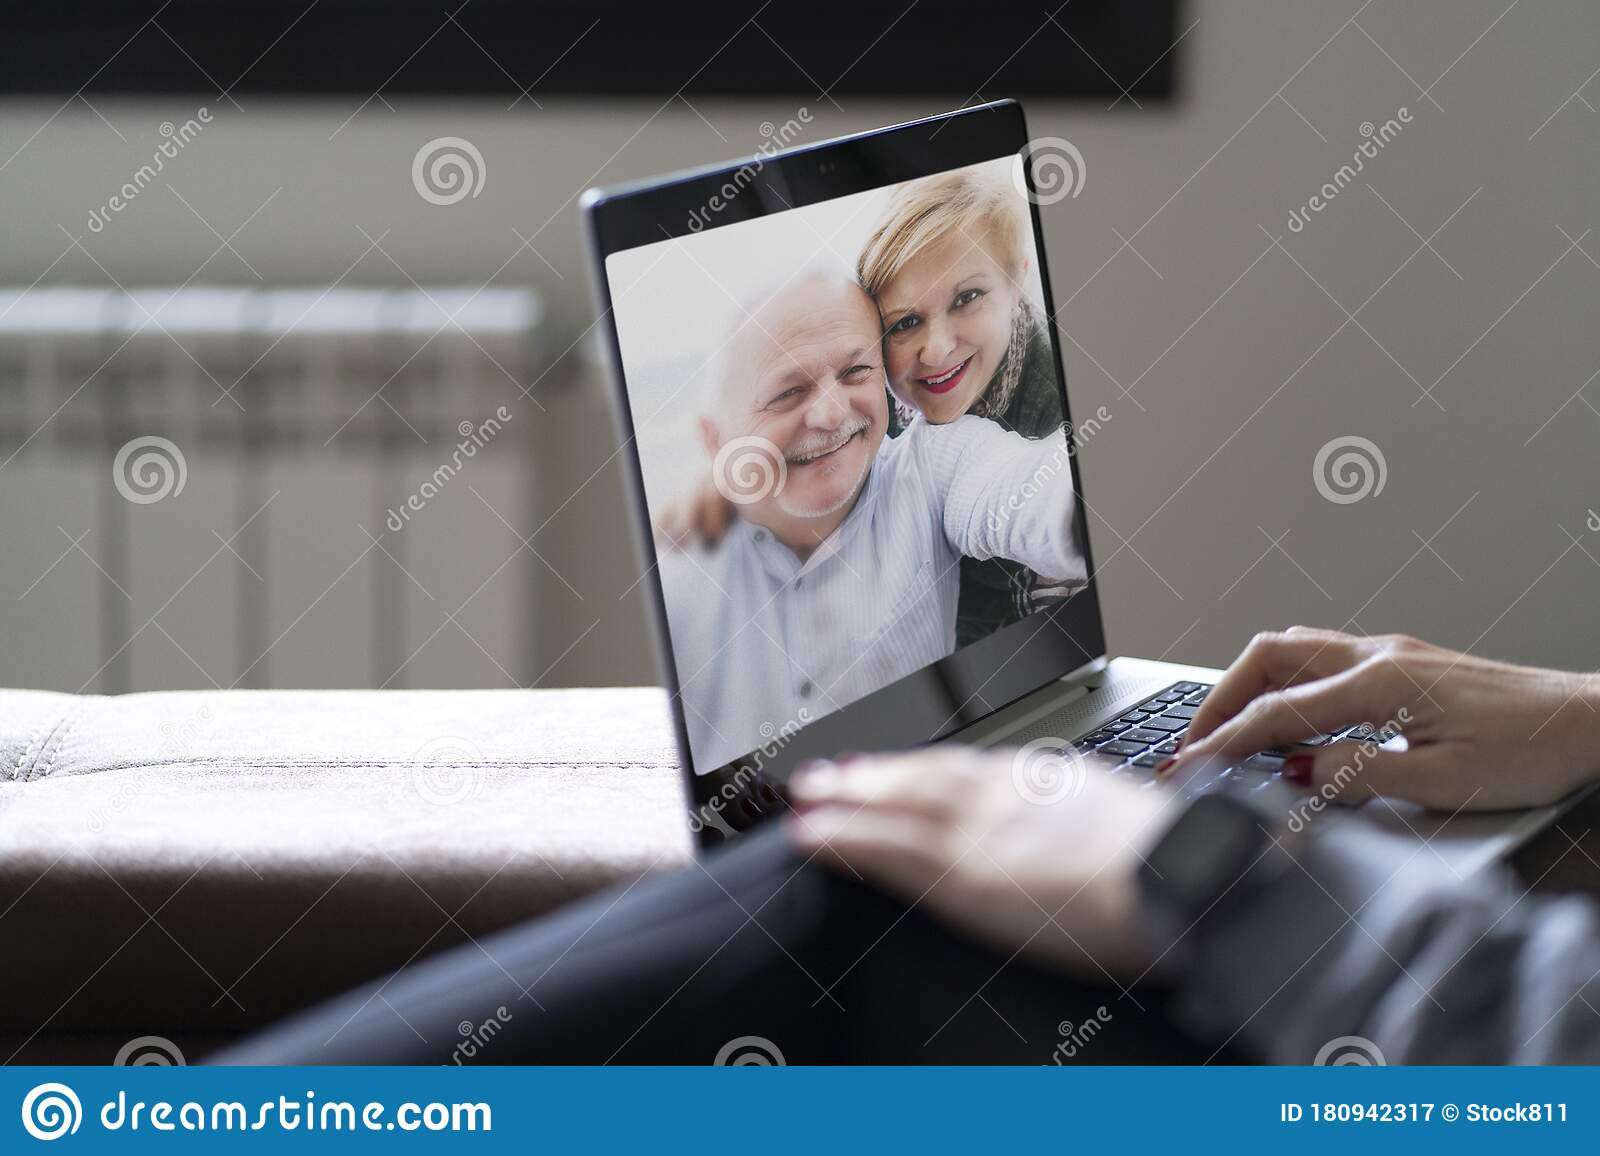 Rear View Of A Woman Talking On A Family Video Call With ...